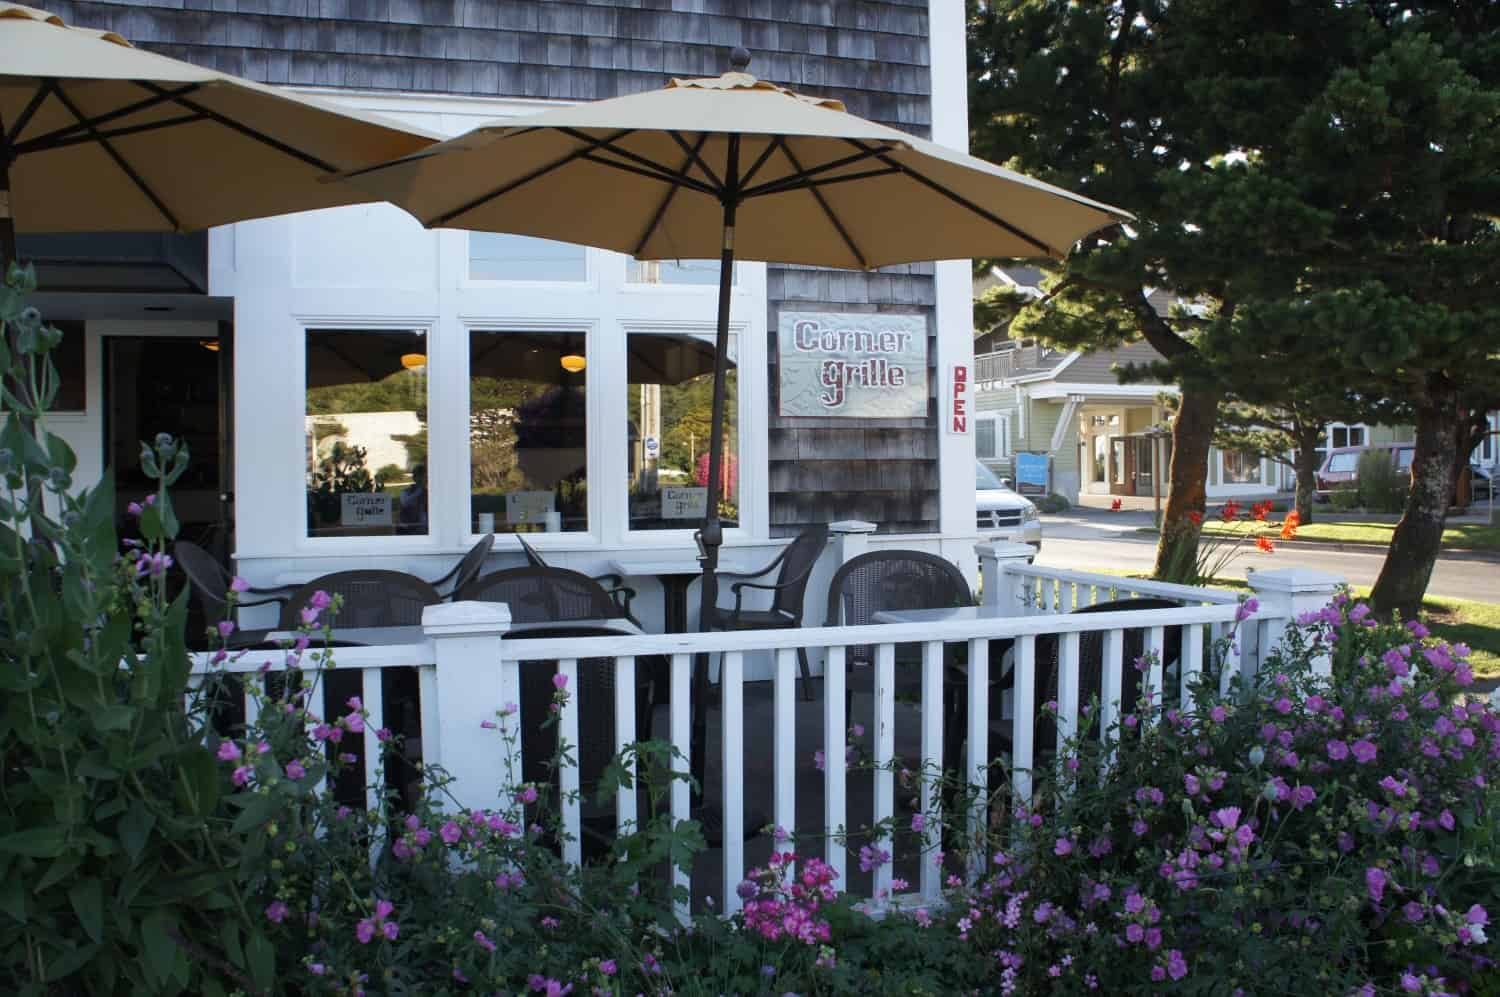 Corner Grille - Cannon Beach, Oregon